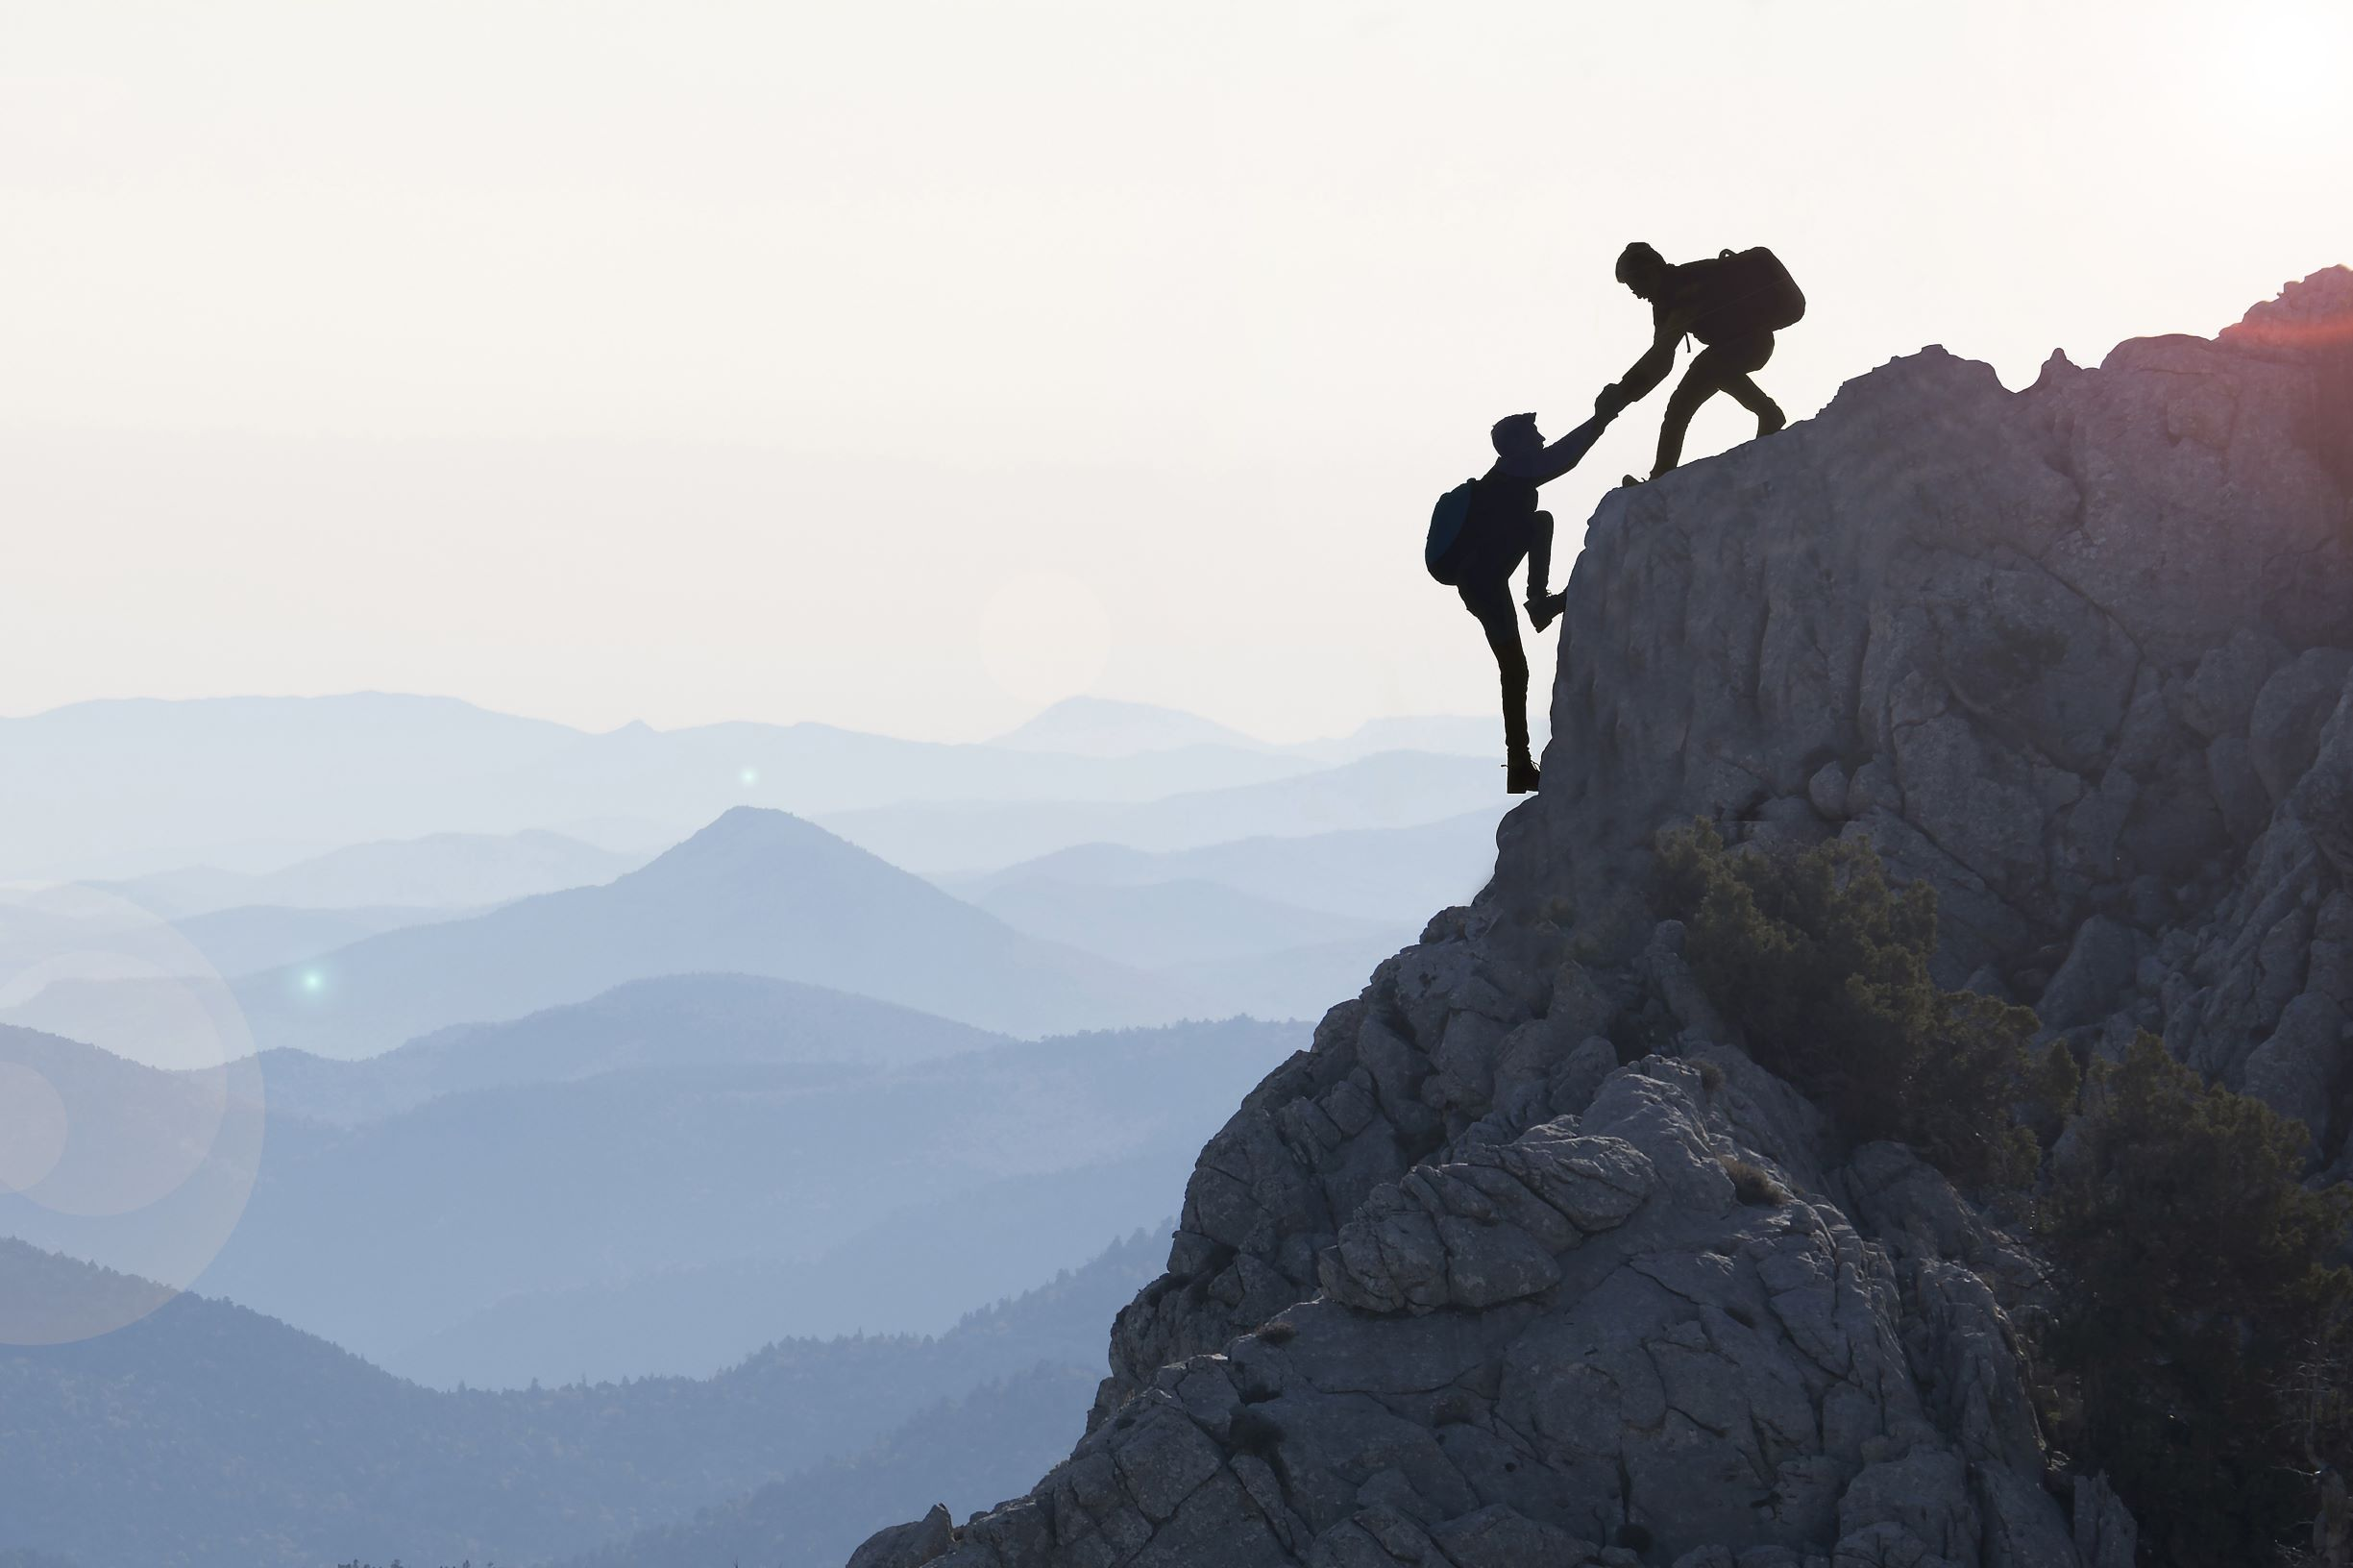 Two friends help each other to reach the summit - LuArtX is supporting you until success